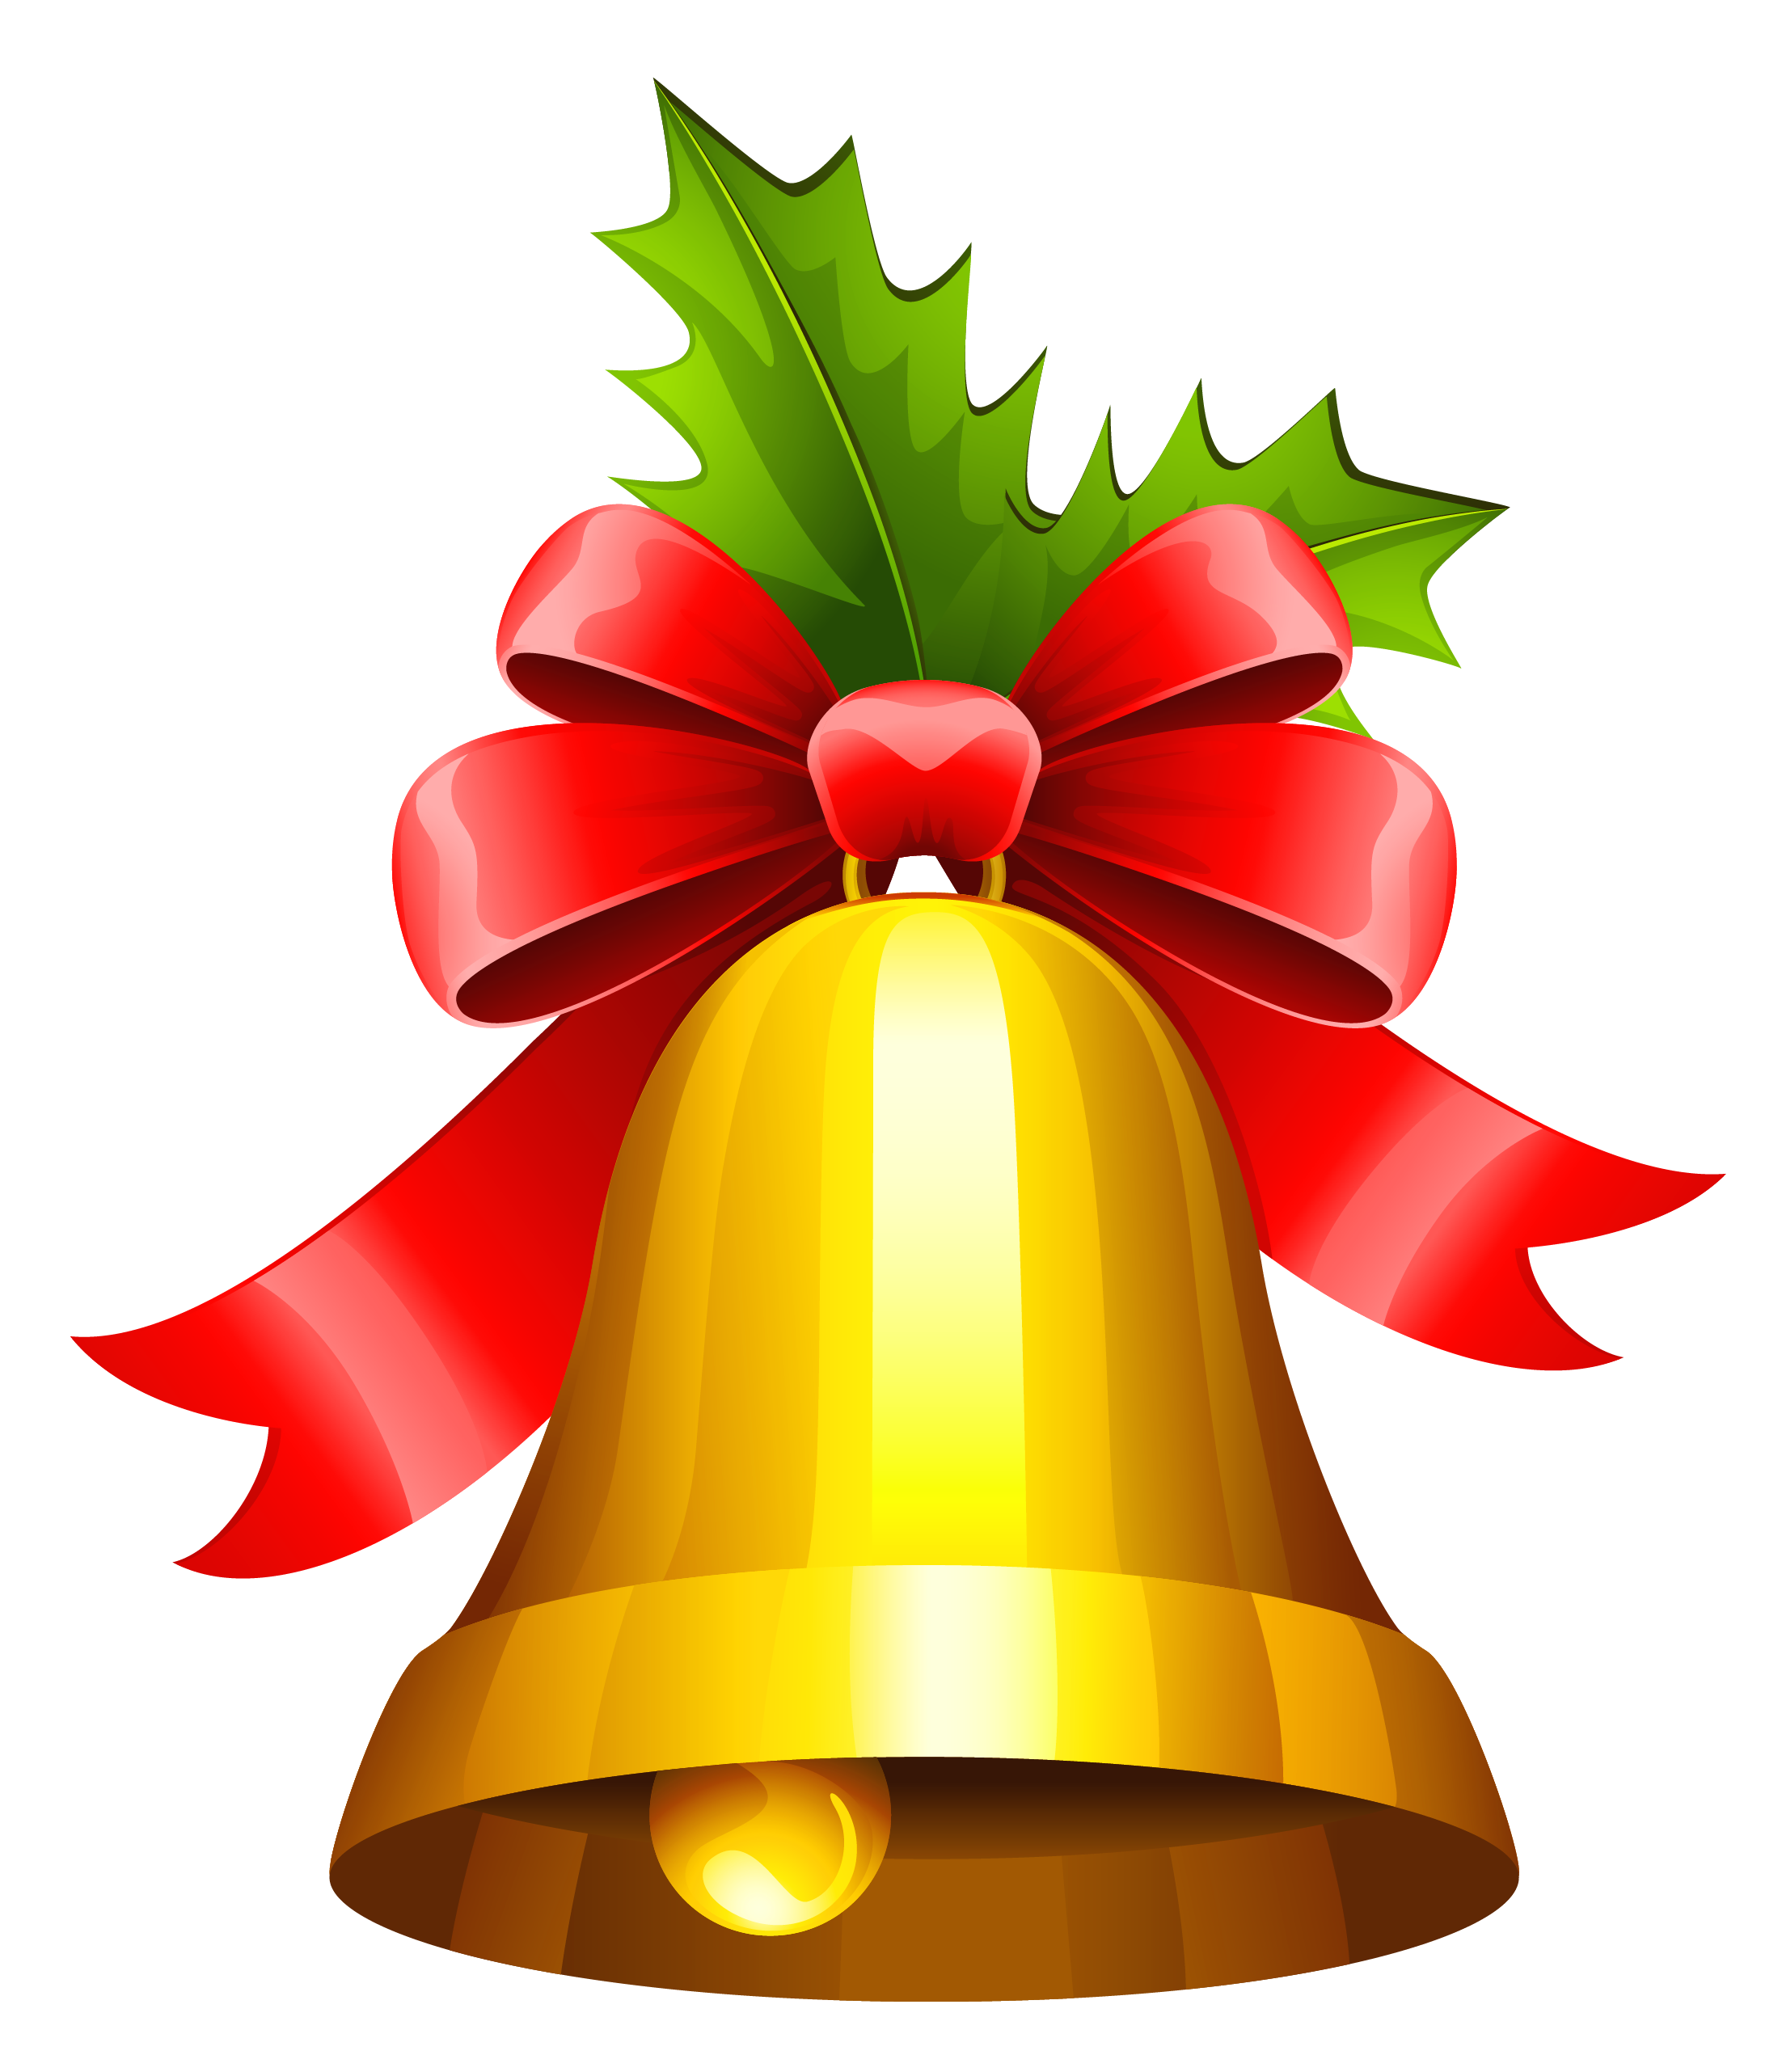 Download for free Bell Transparent PNG Image